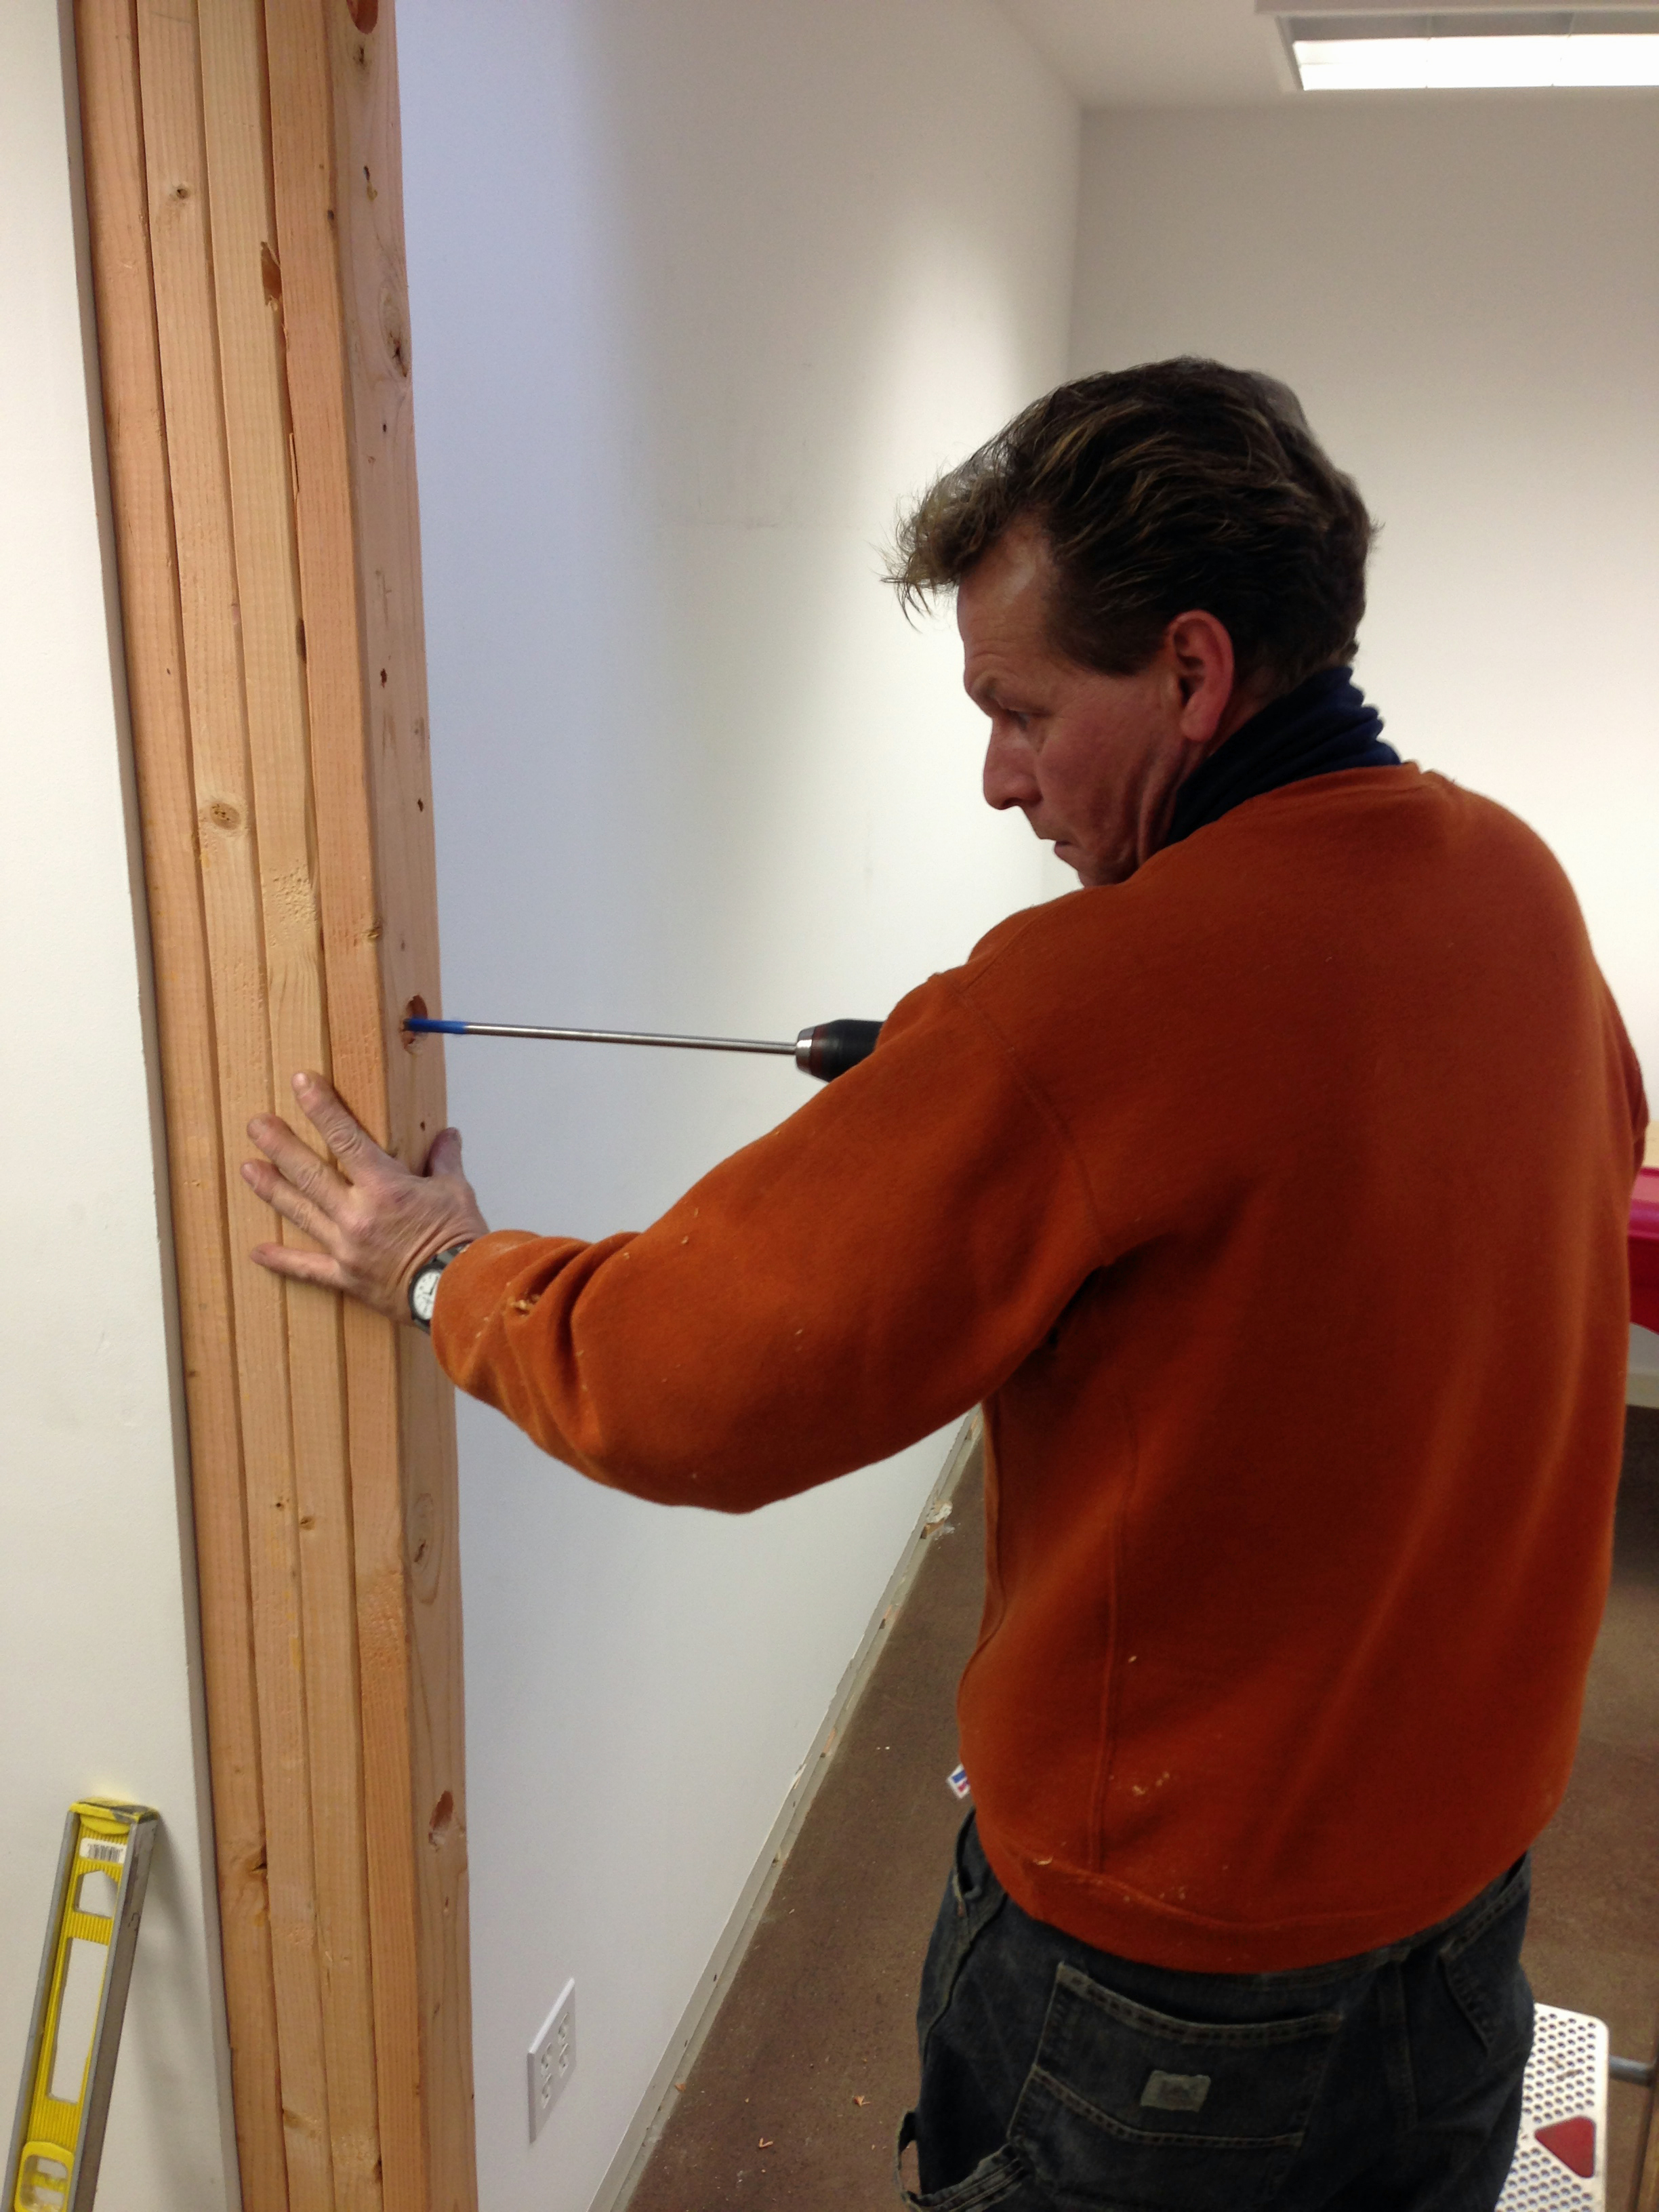 I was privileged to have my friend and master woodworker Sean Smith come to help with the project.  Here Sean is anchoring the new wall.